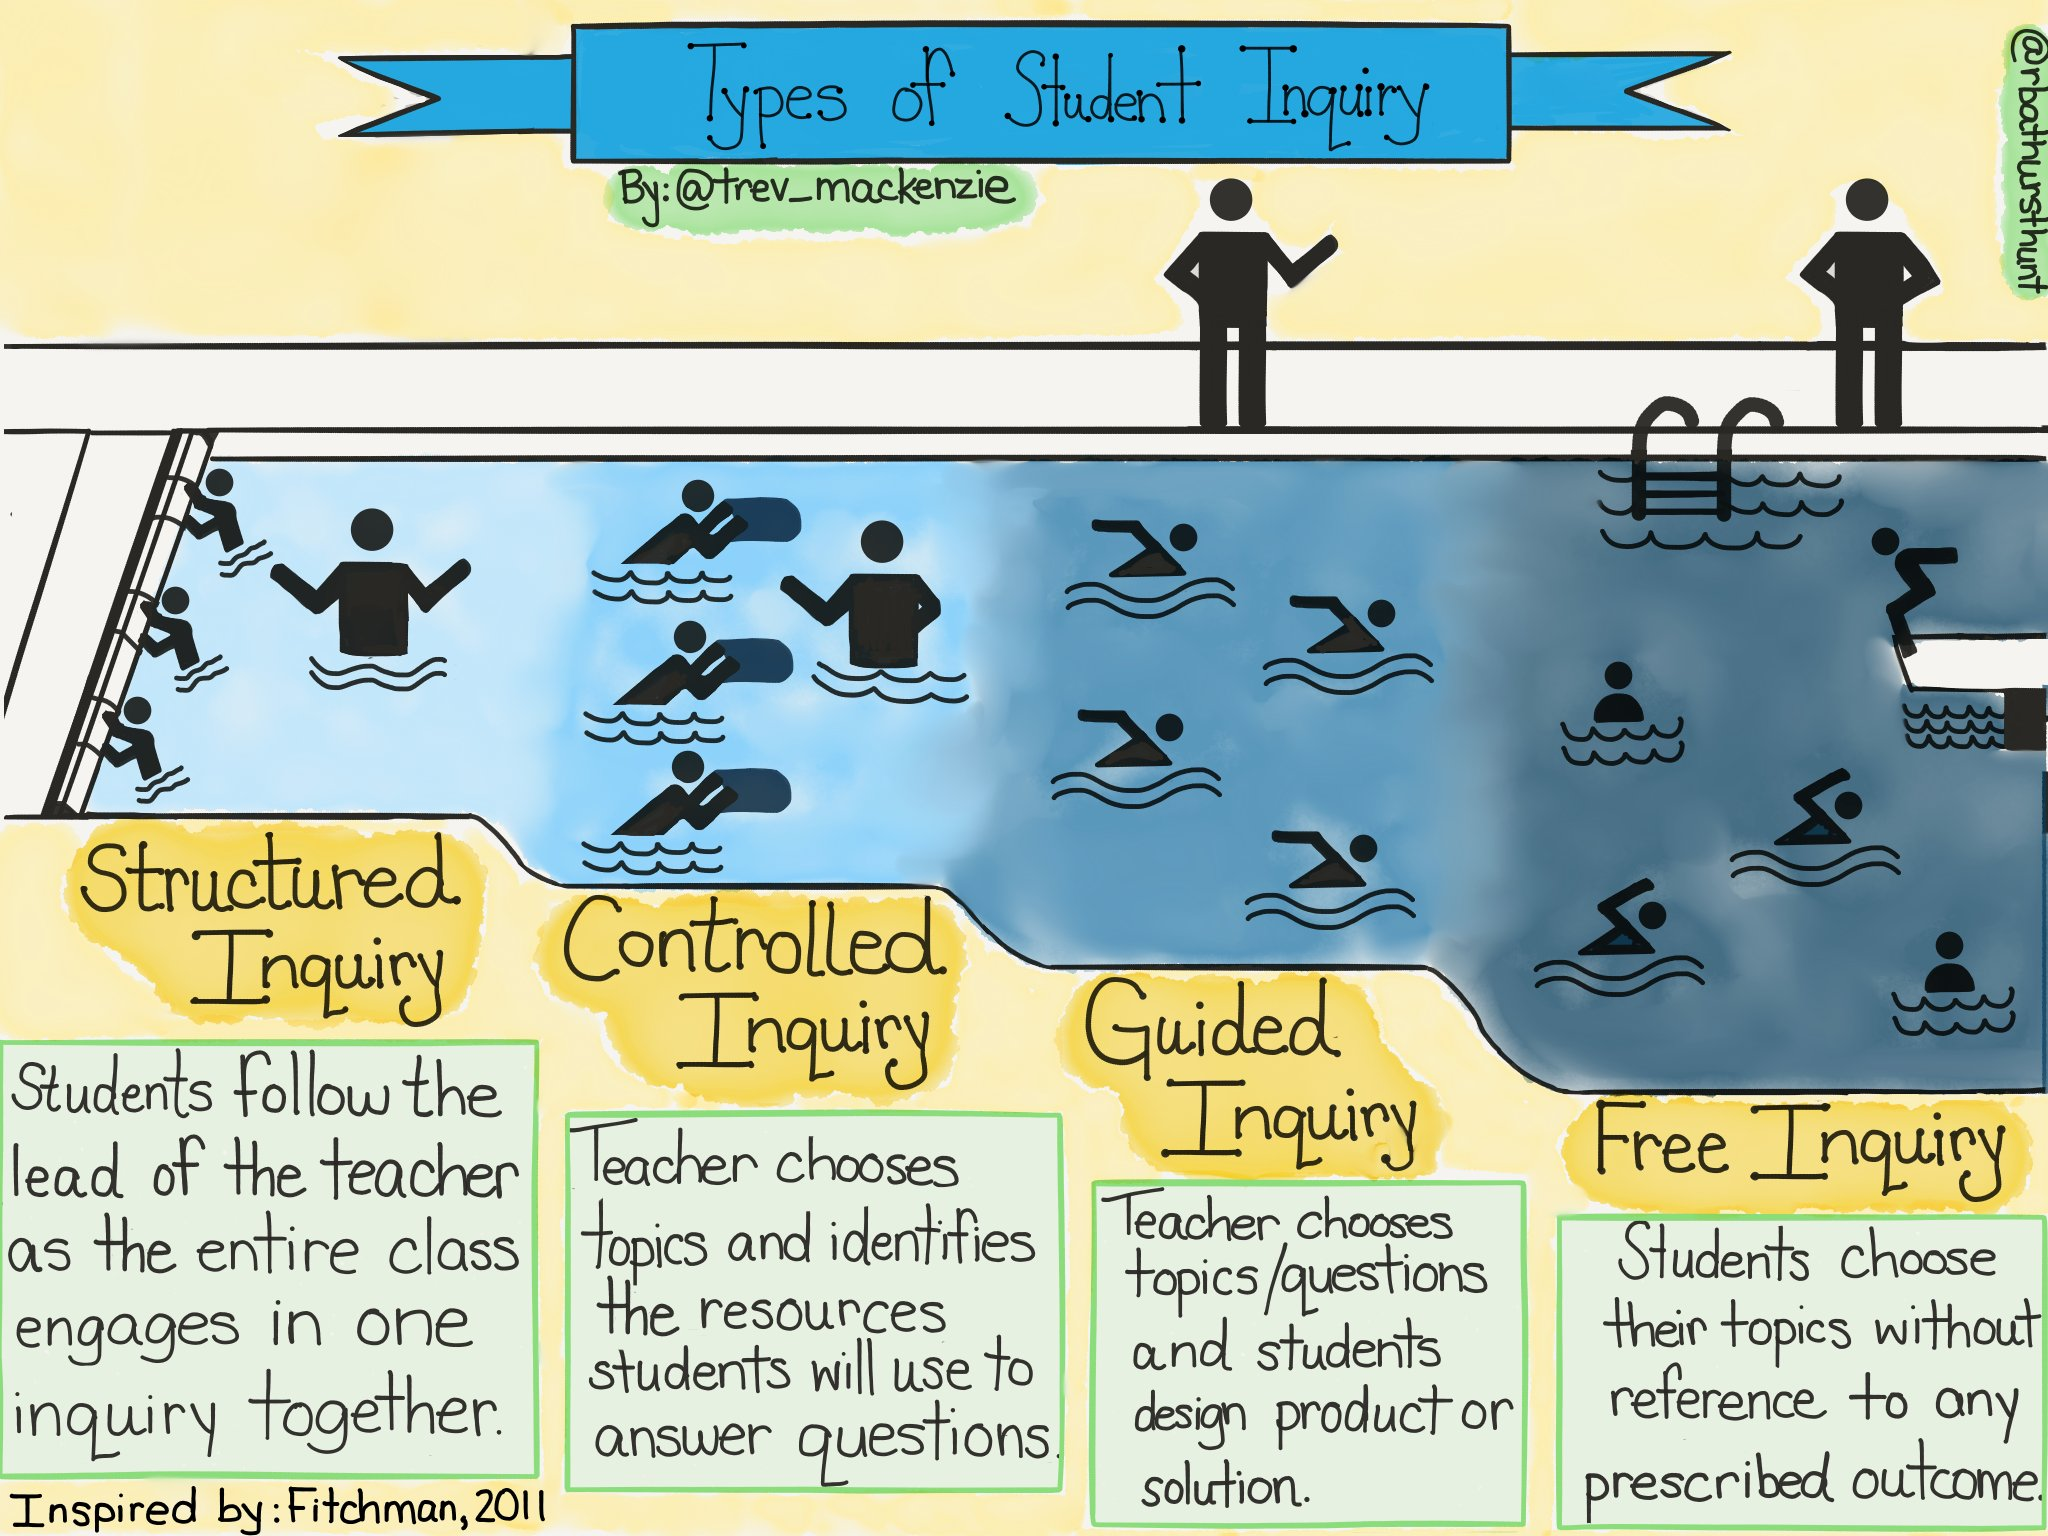 Consider scaffolding into student agency, not throwing students into the deep end of #inquiry, and being intentional in your processes and structures.  #caedchat #cuechat #tosachat #onted #aussieED #ibpyp #asiaED #InquiryMindset #edchat #plearning https://t.co/nBJE2kuT4S